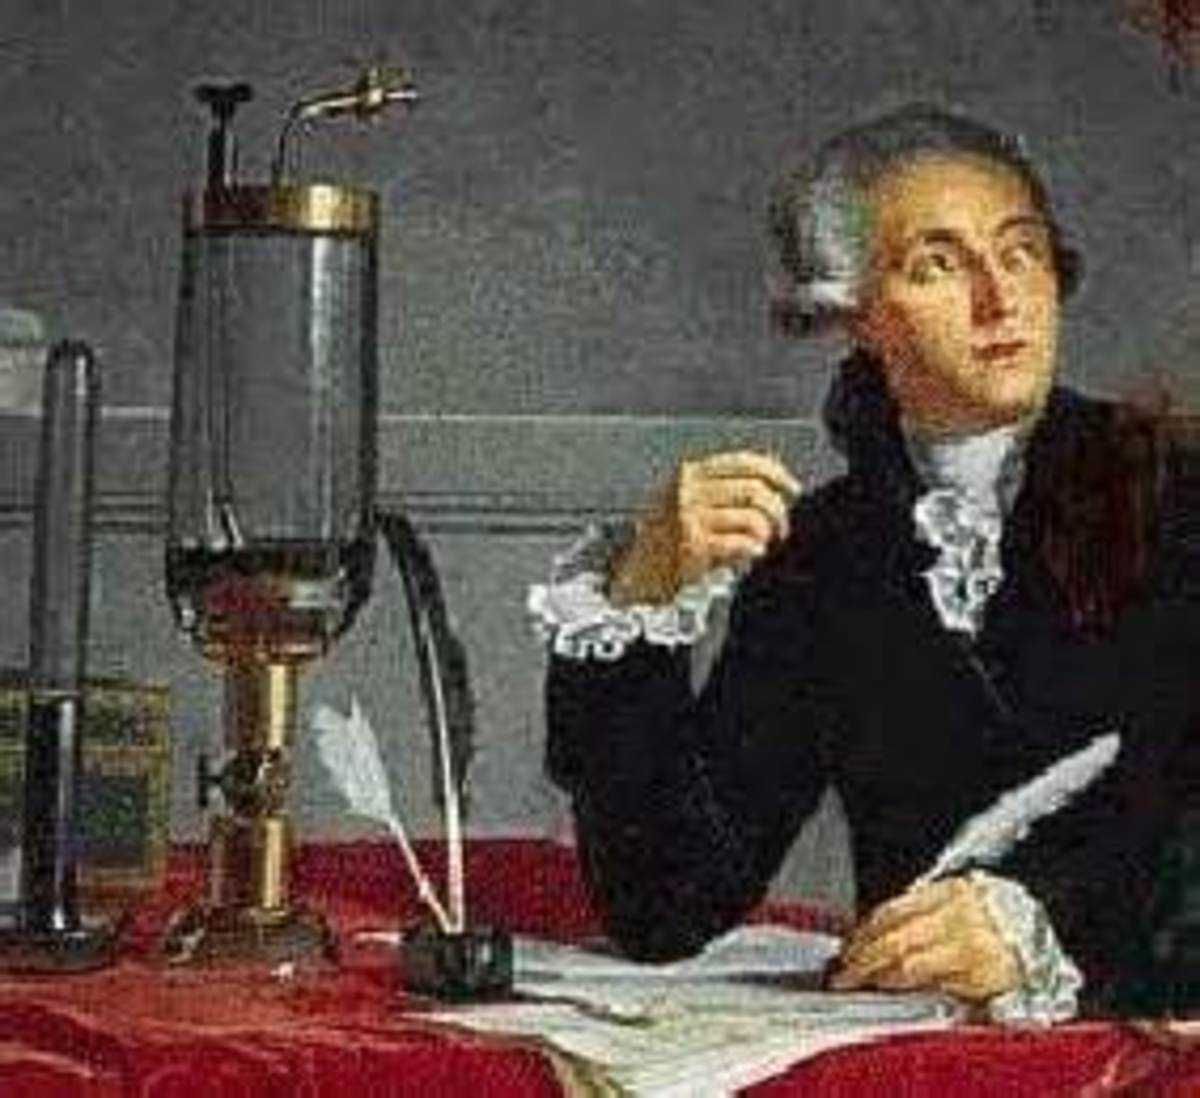 Antoine Lavoisier: (26 August 1743 – 8 May 1794); developed a new system of chemical nomenclature.